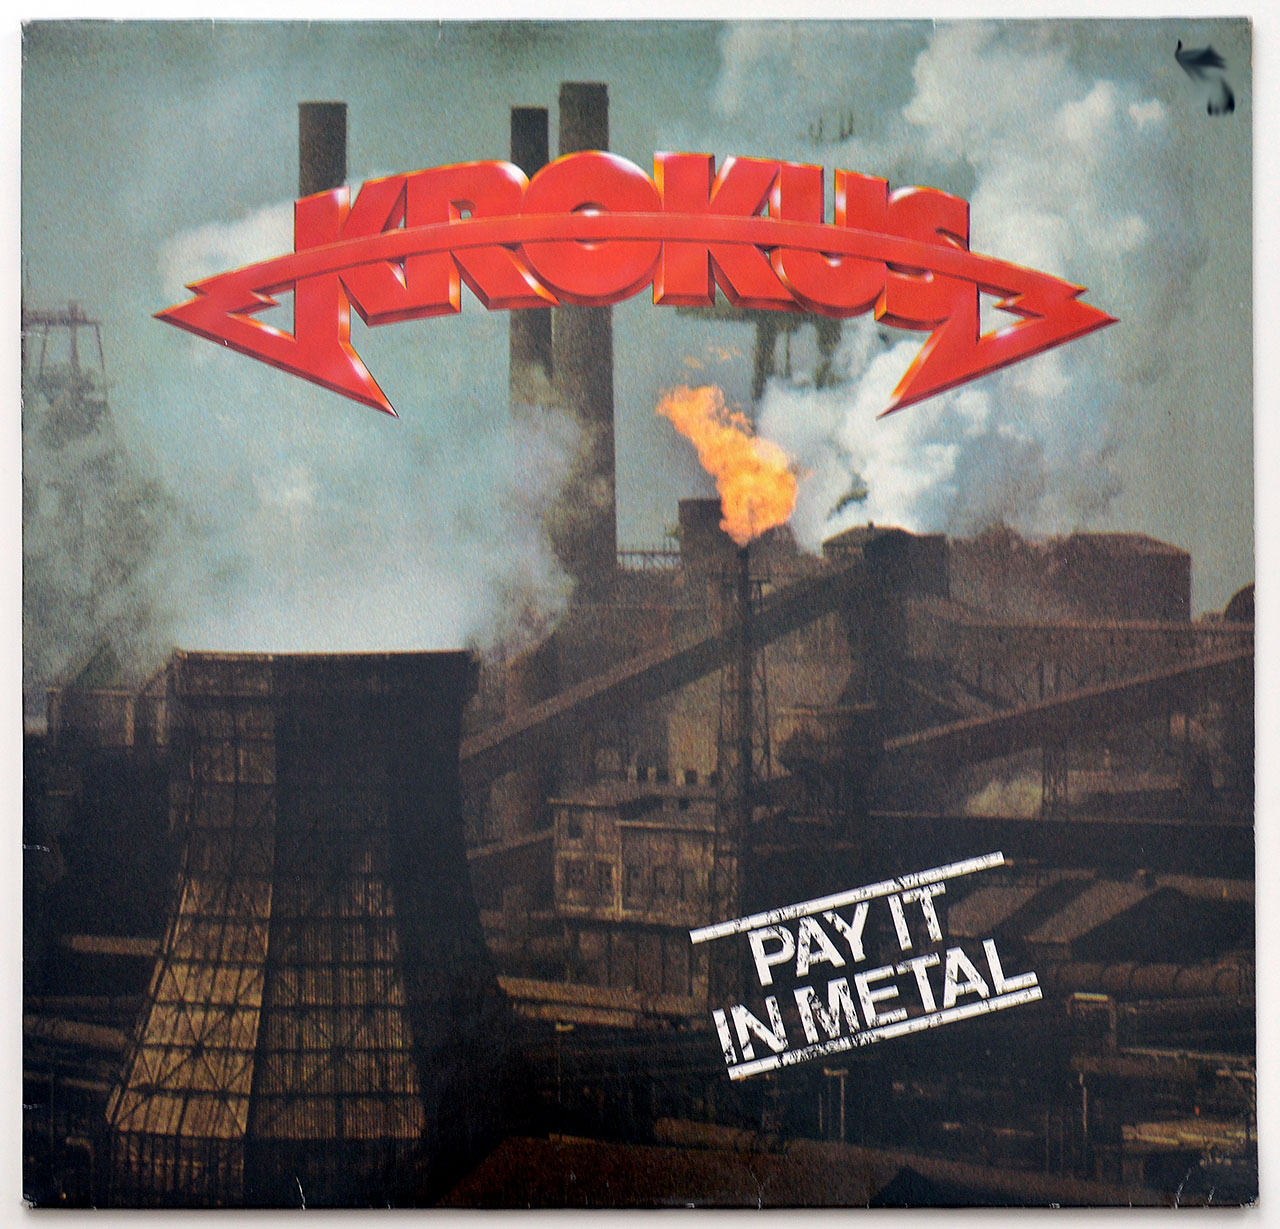 A0740 KROKUS Pay In Metal